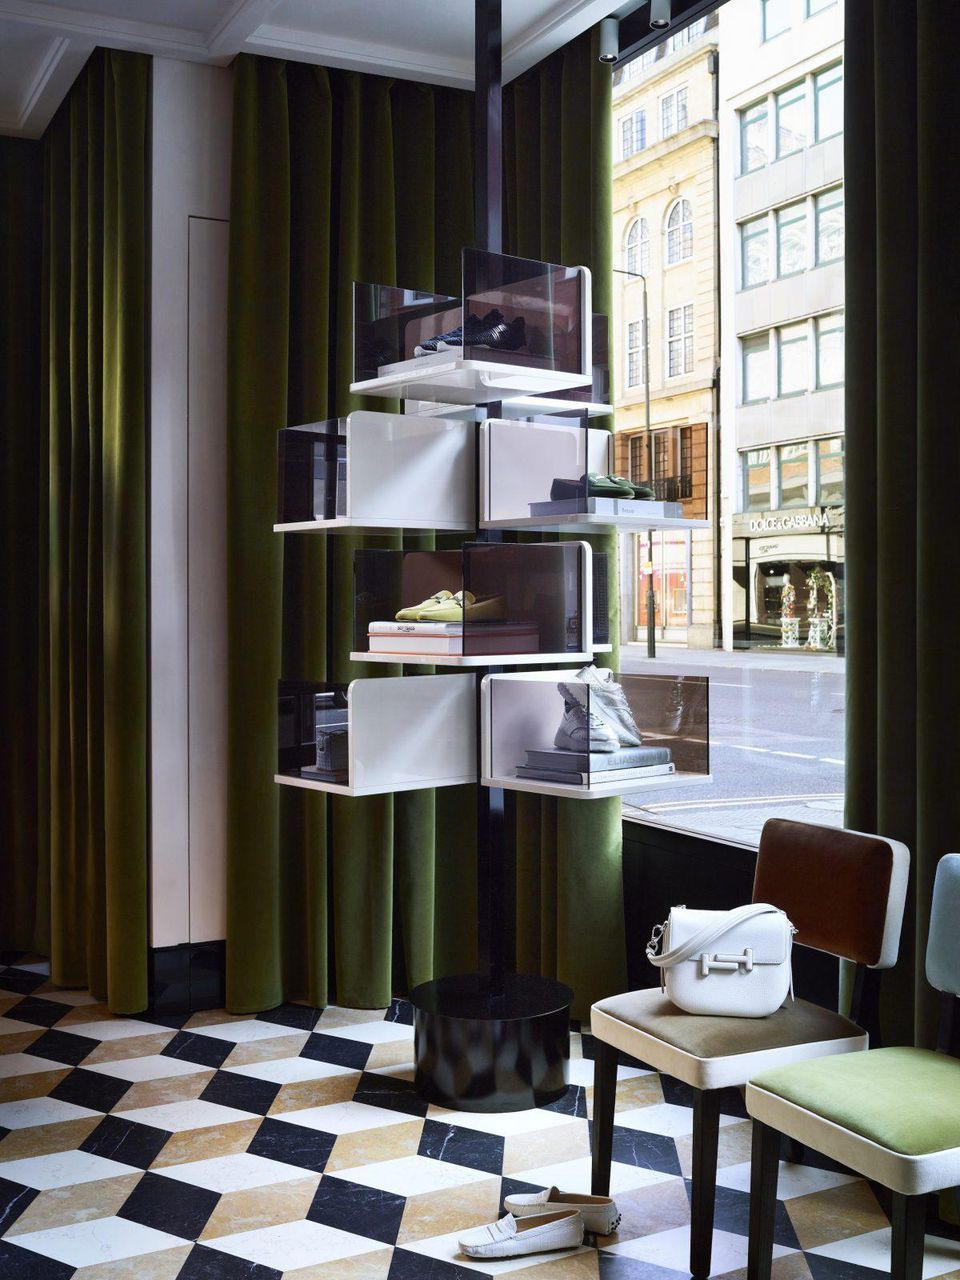 India Mahdavi Discusses The Design Behind New Tod S Sloane Apartment In London